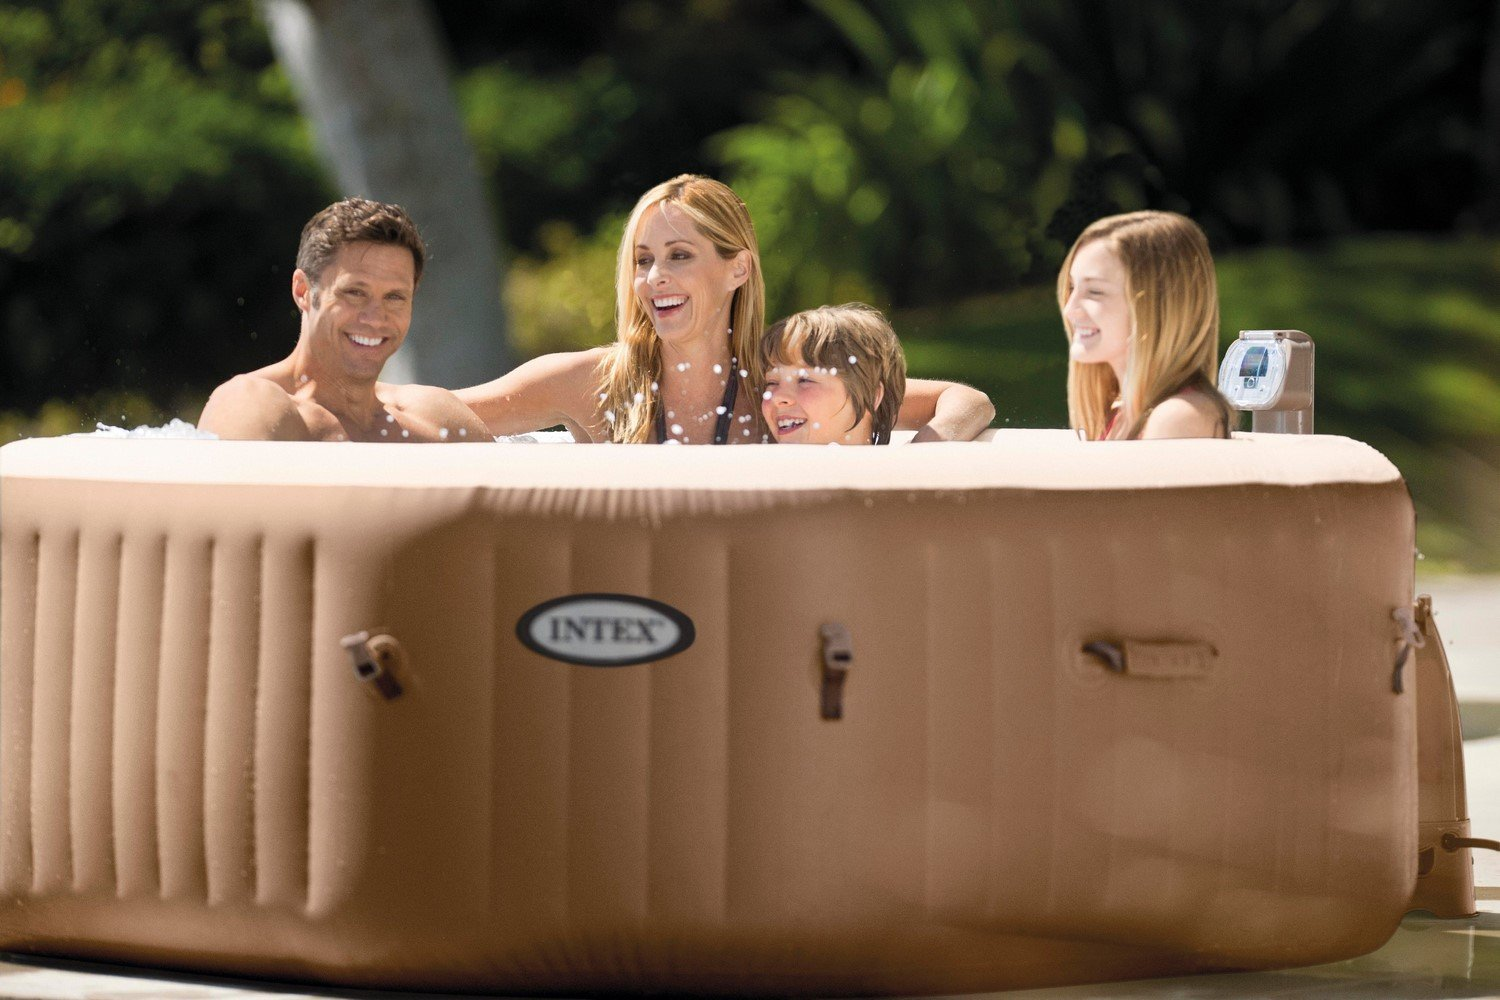 Intex 79In X 79In X 28In PureSpa Portable Bubble Spa Set